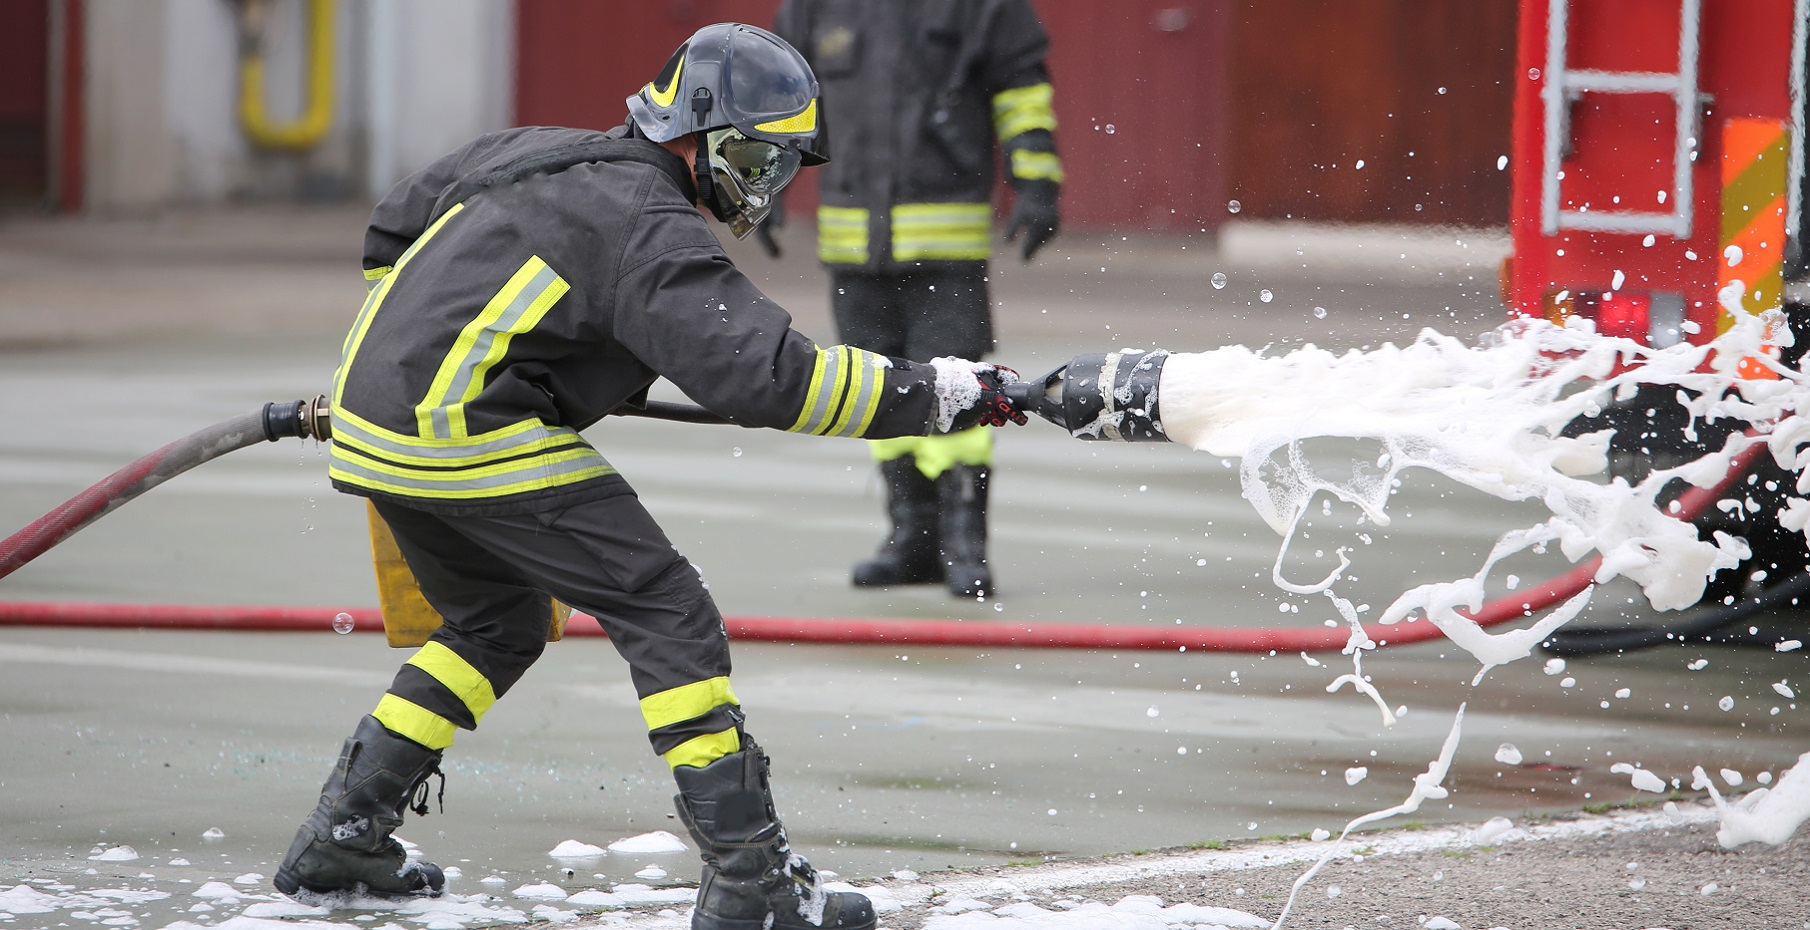 Although most people have been exposed to PFAS at low levels, individuals with higher exposure, including firefighters, military personnel, and residents living near military bases, are at a greater risk of PFAS-related health problems.